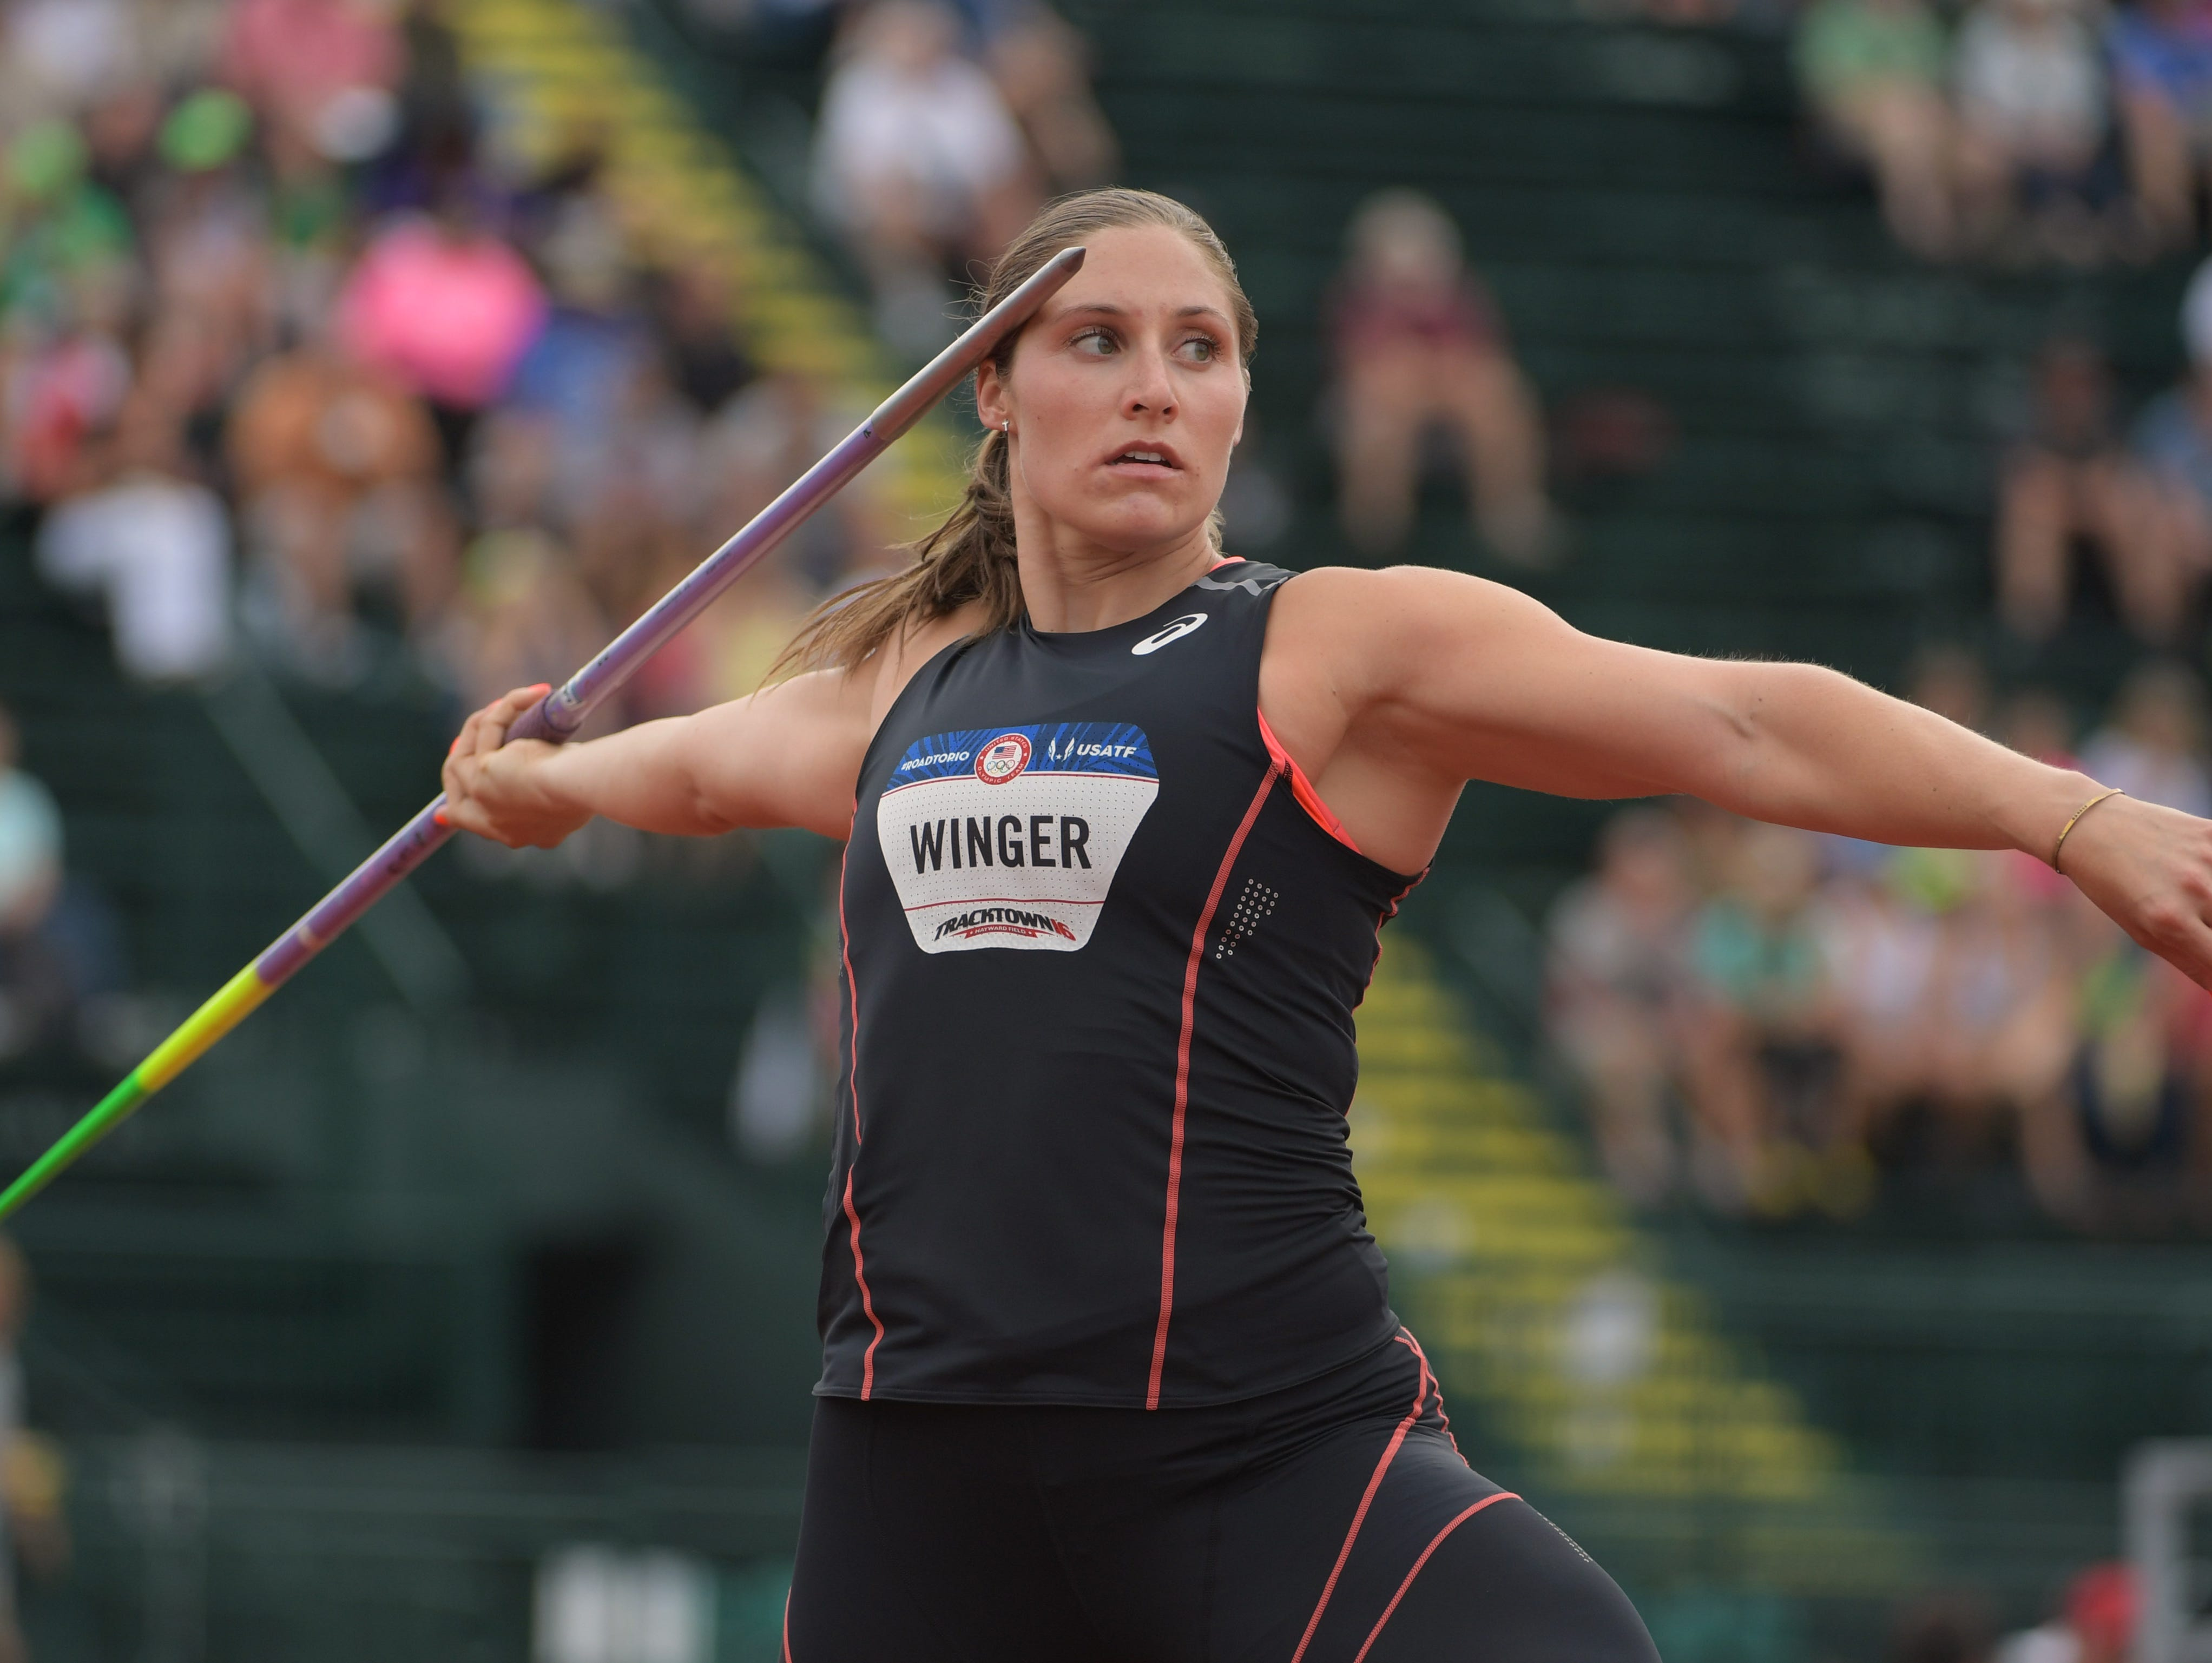 Kara Winger competes Thursday during the women's javelin throw qualifying heats in the 2016 U.S. Olympic track and field team trials at Hayward Field.